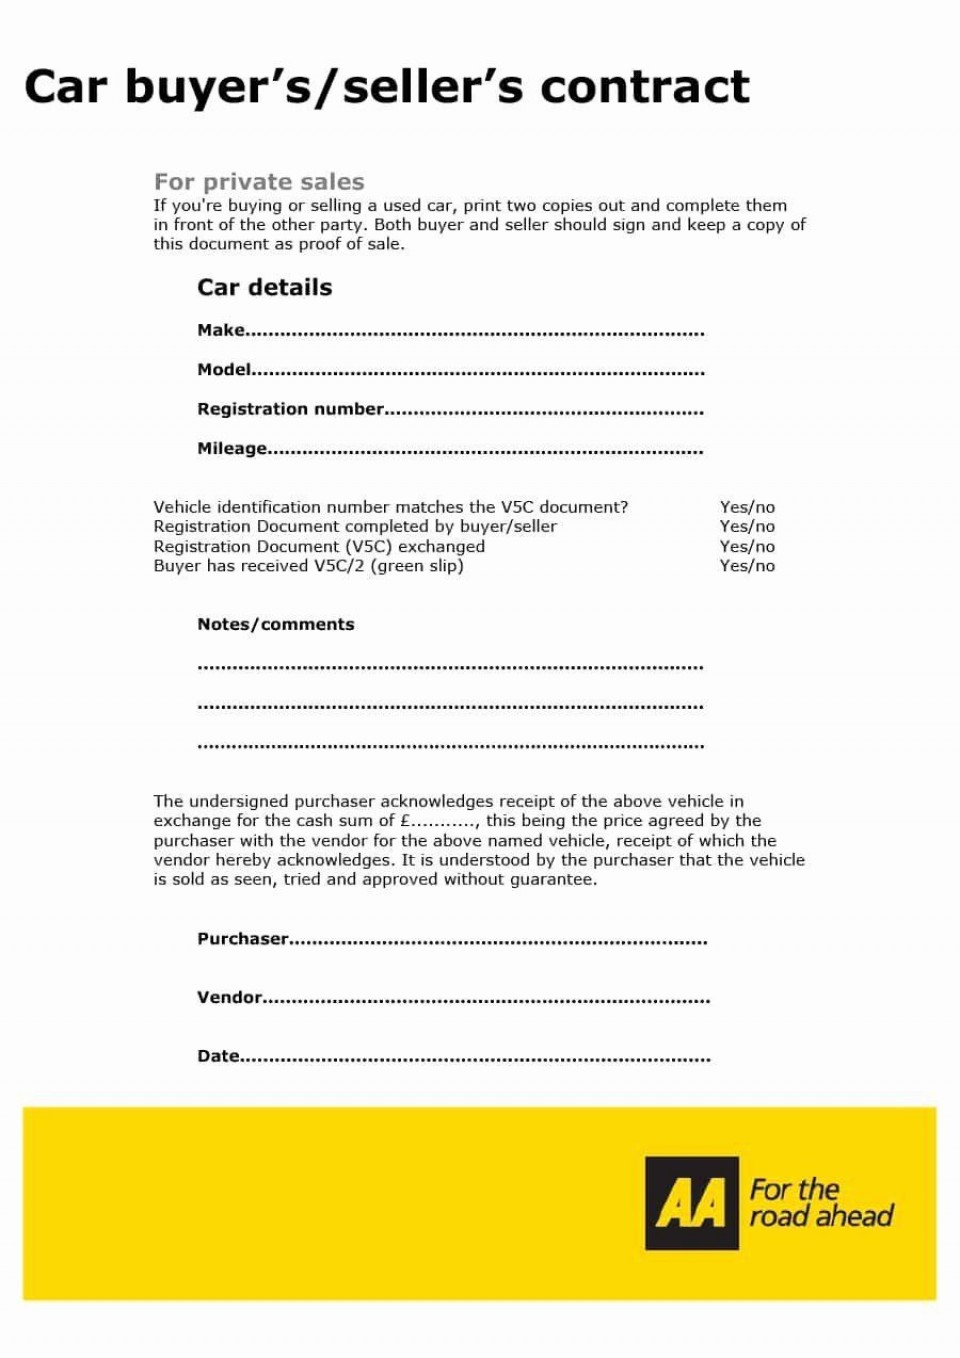 001 Simple Car Rental Agreement Template South Africa High Def  Vehicle Rent To Own960